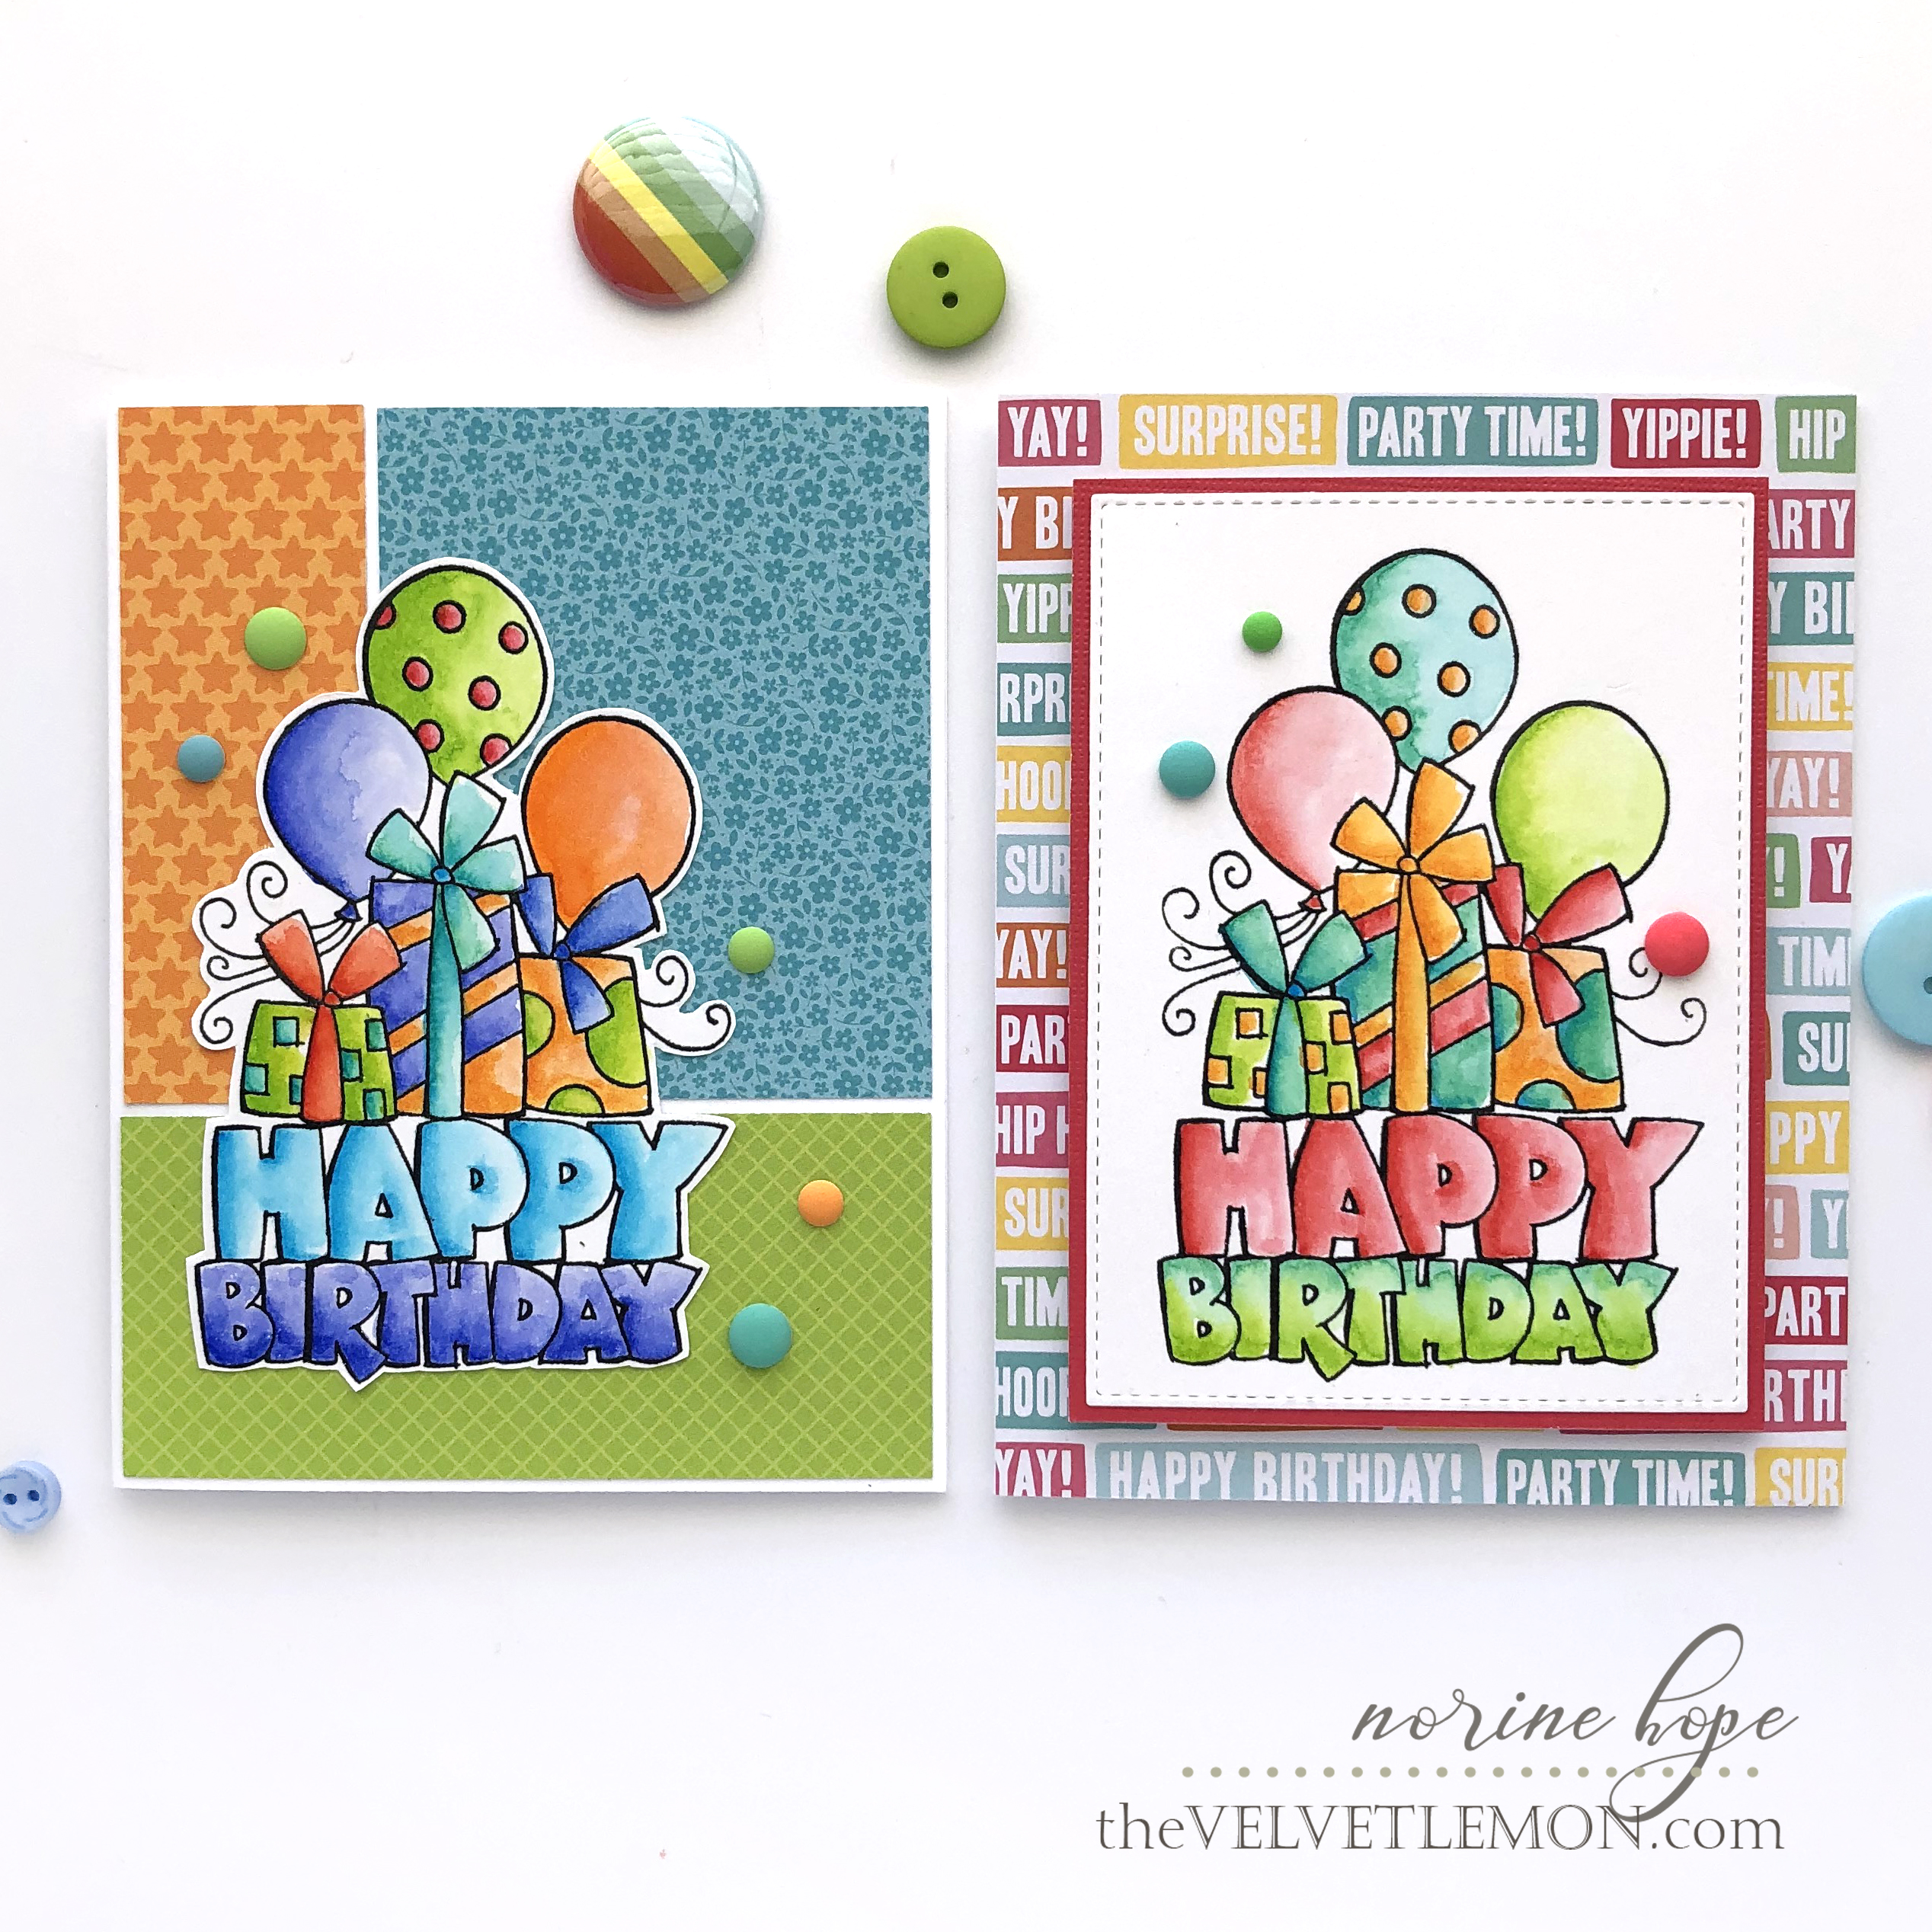 I Have A Couple More Cards To Share Today Featuring One Of My Favorite Stand Alone Birthday Image Stamps Chunky Rubber Stamp From Stampendous